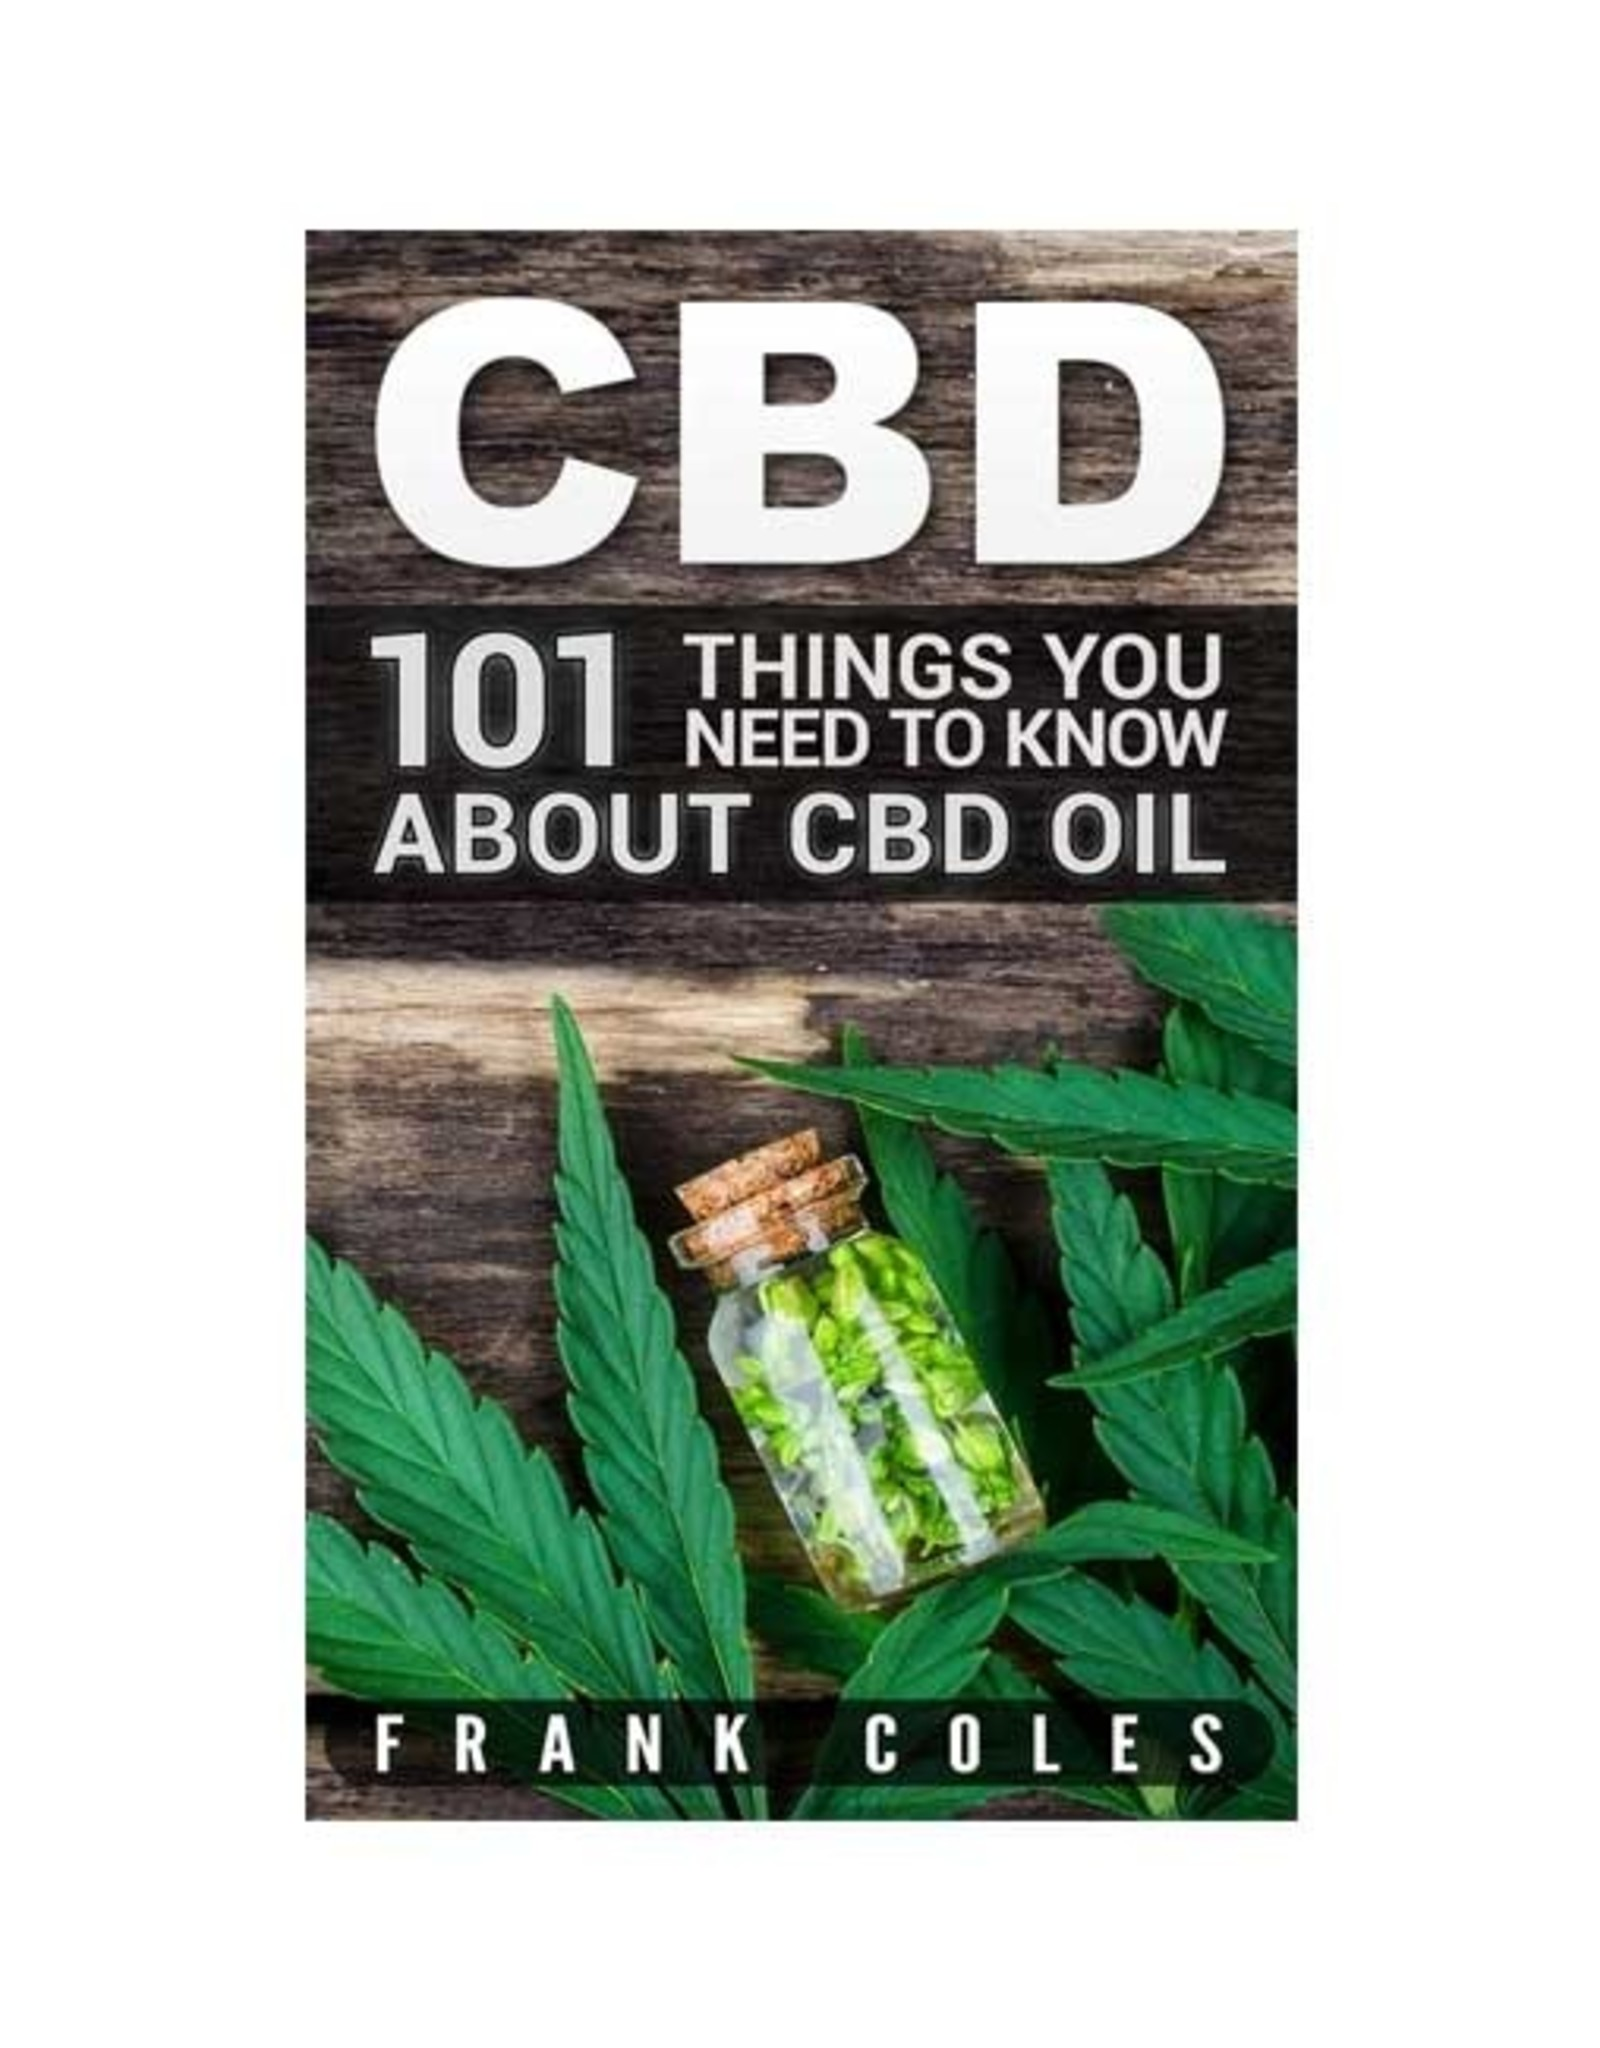 CBD 101 Things You Need To Know About CBD Oil